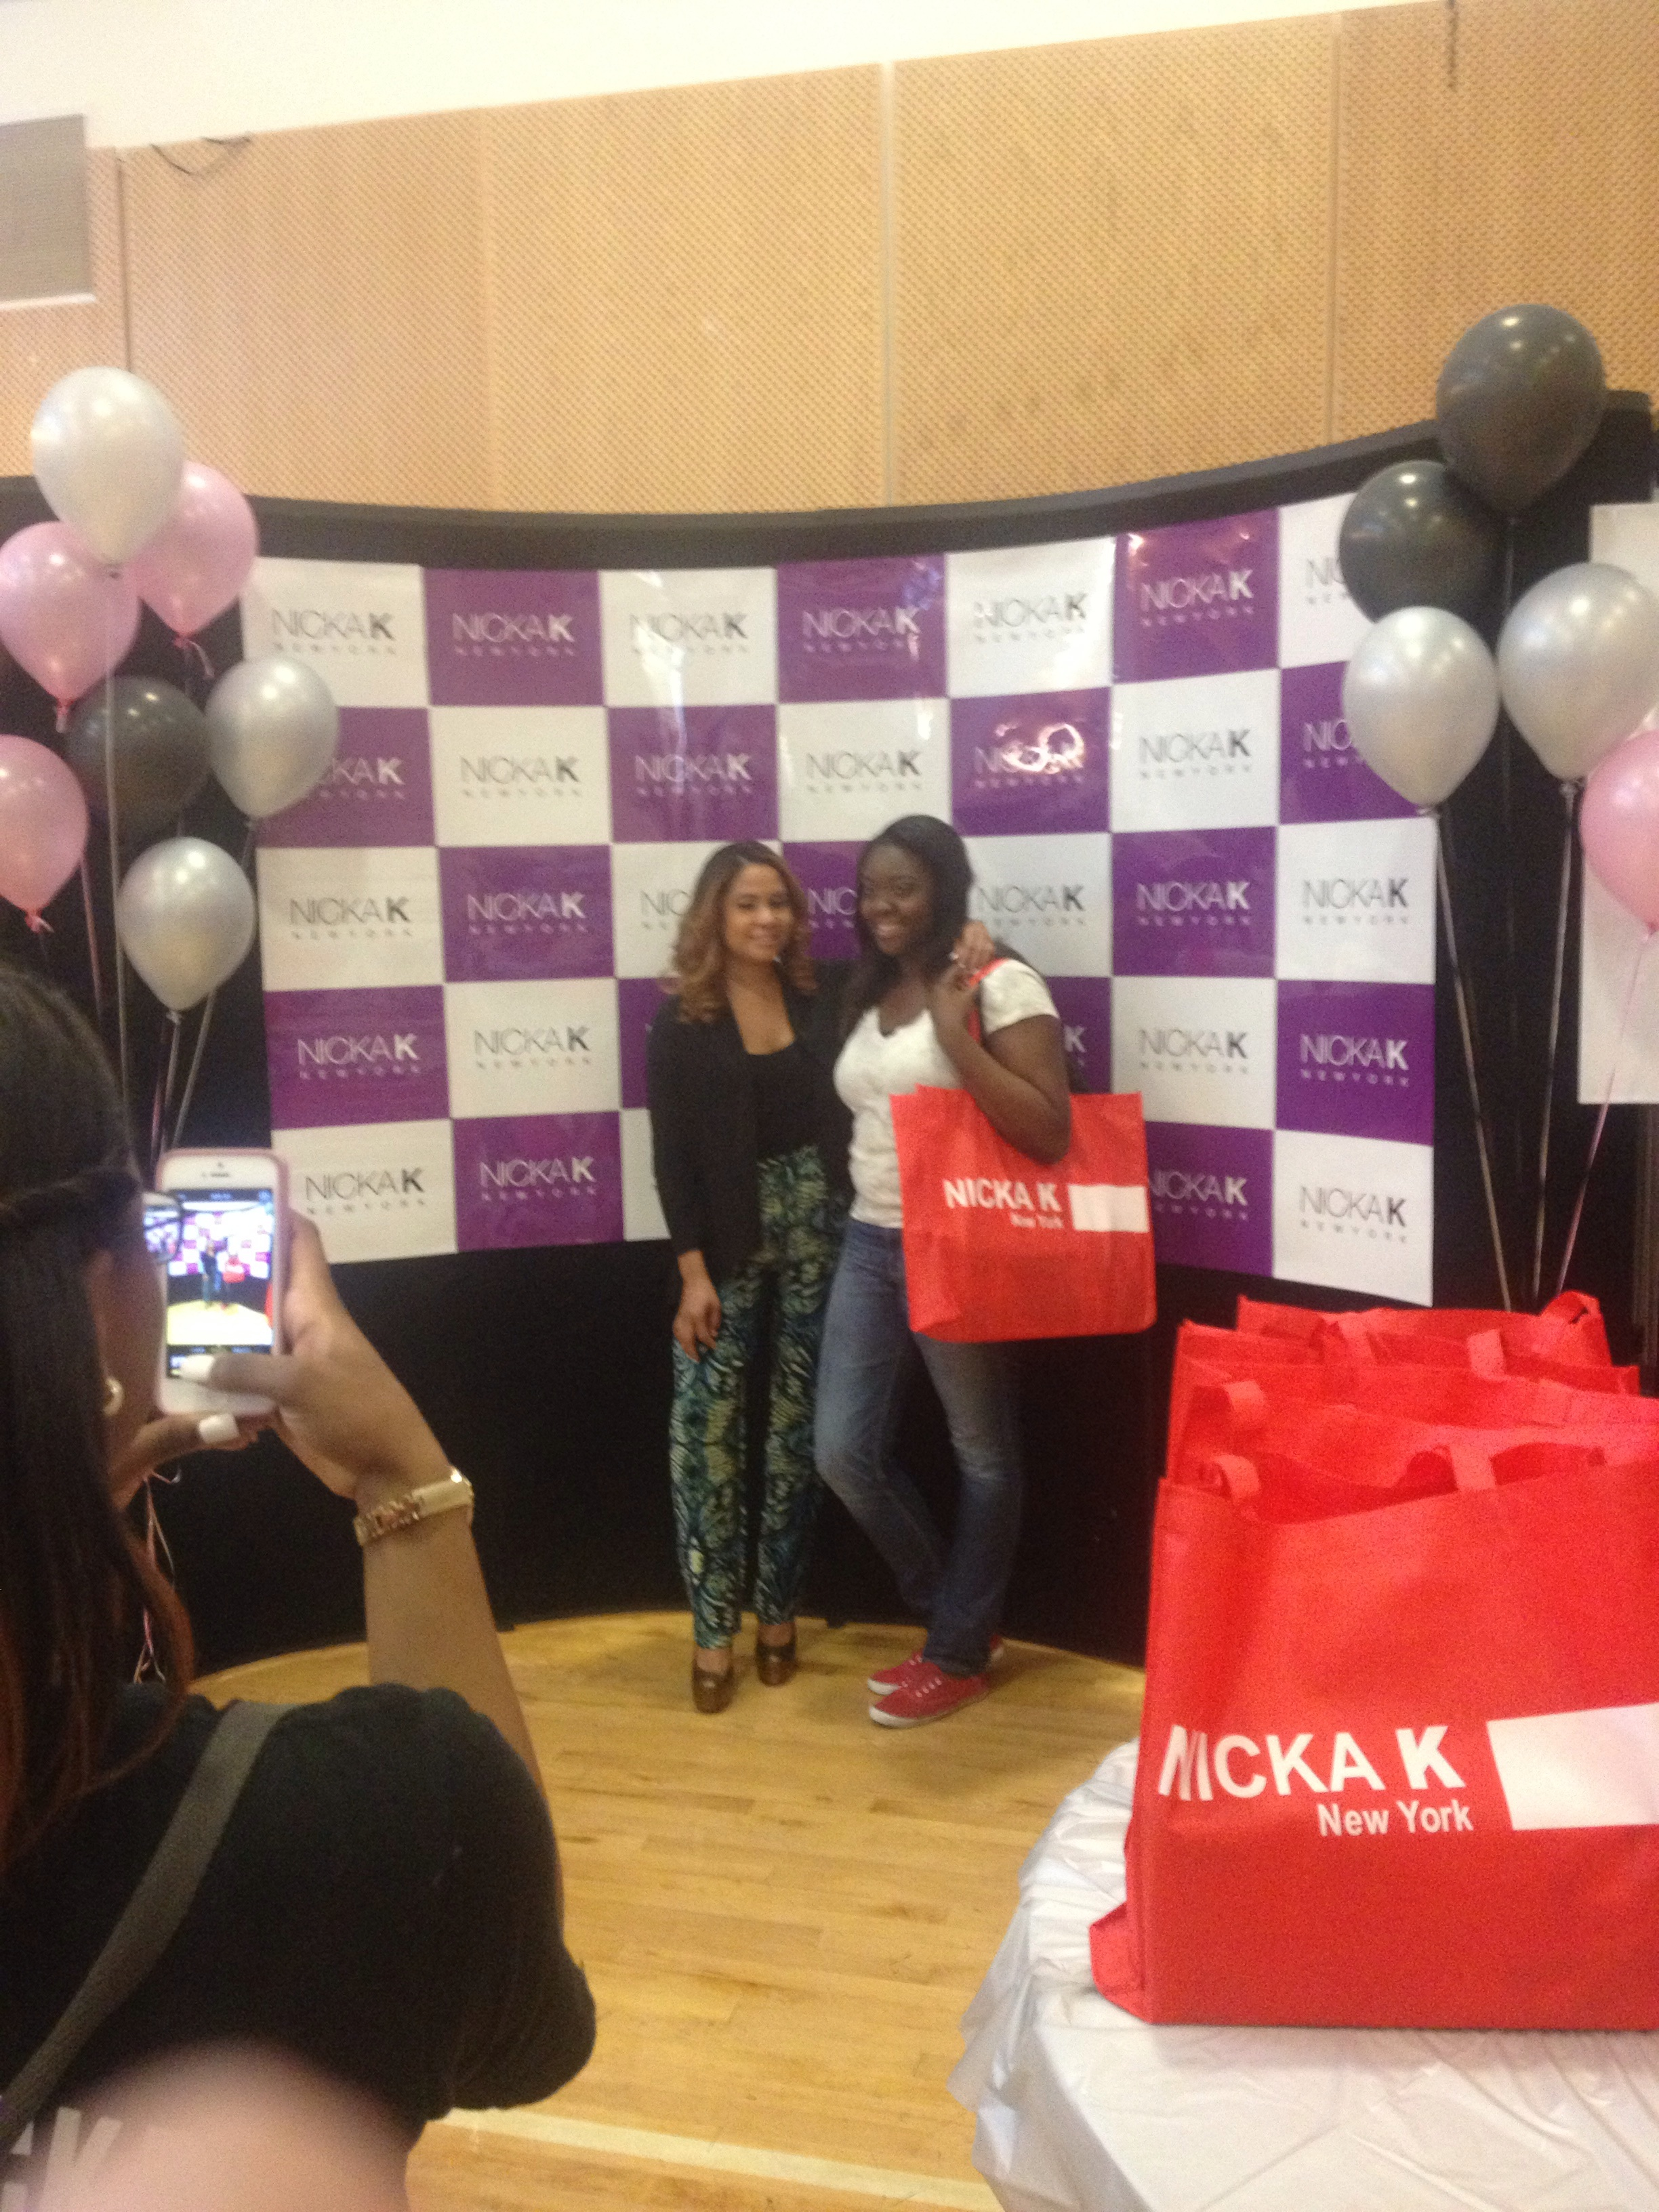 (Angela Yee poses with an honoree over at the Nika K section)